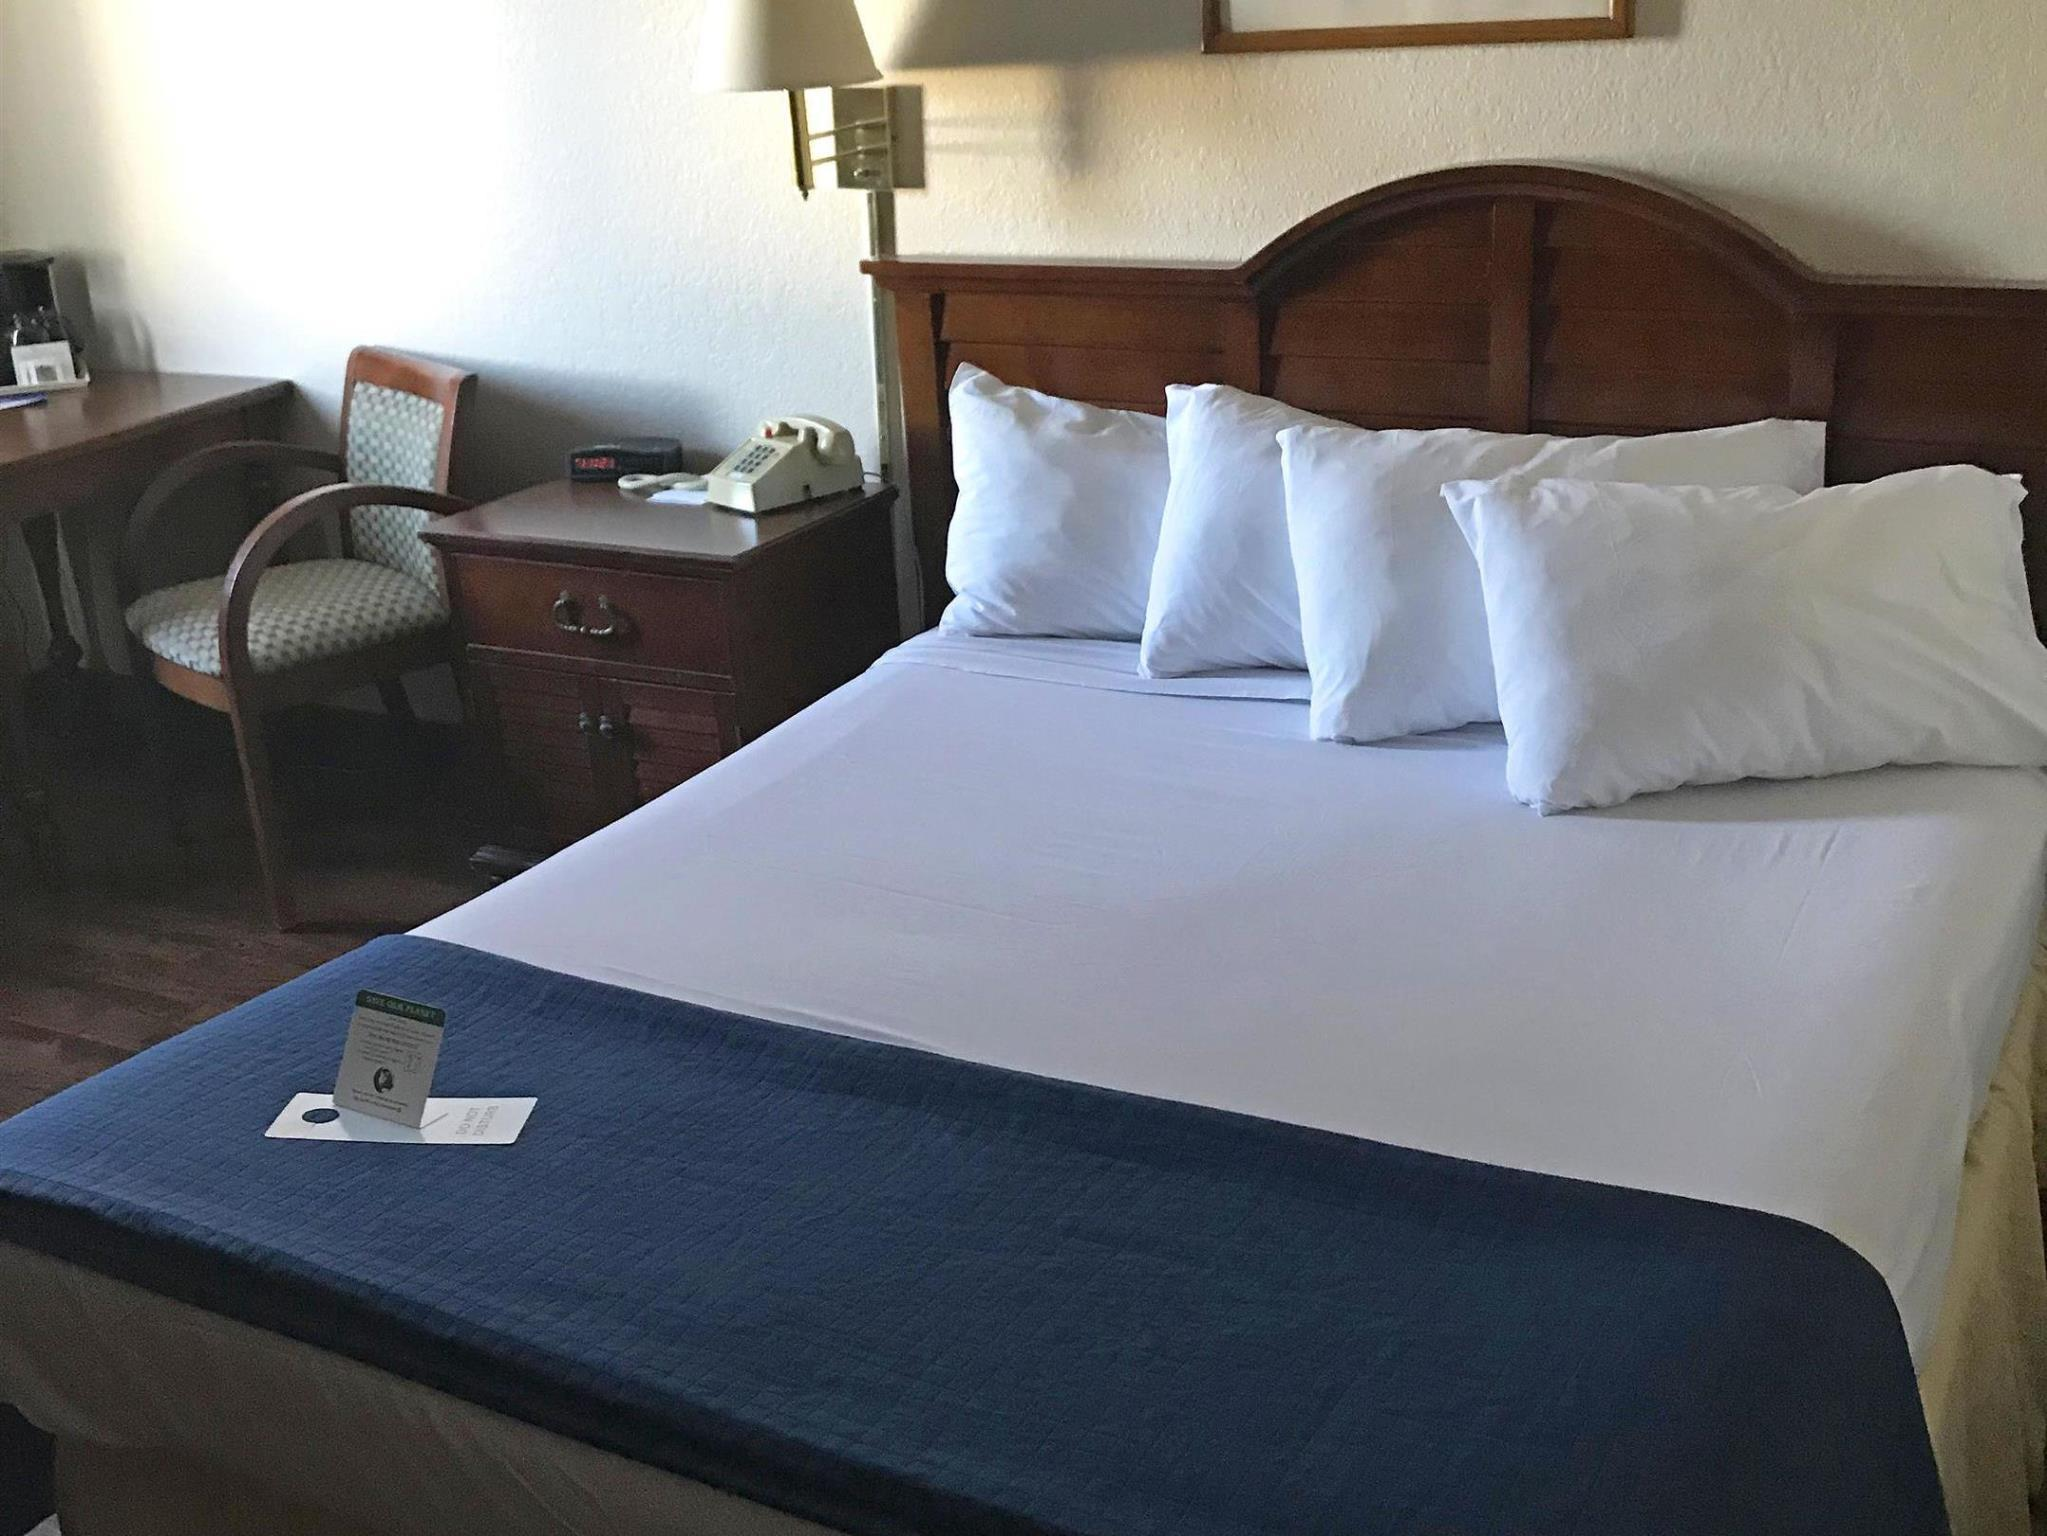 Pet Friendly Room with 1 Queen Bed - No Smoking